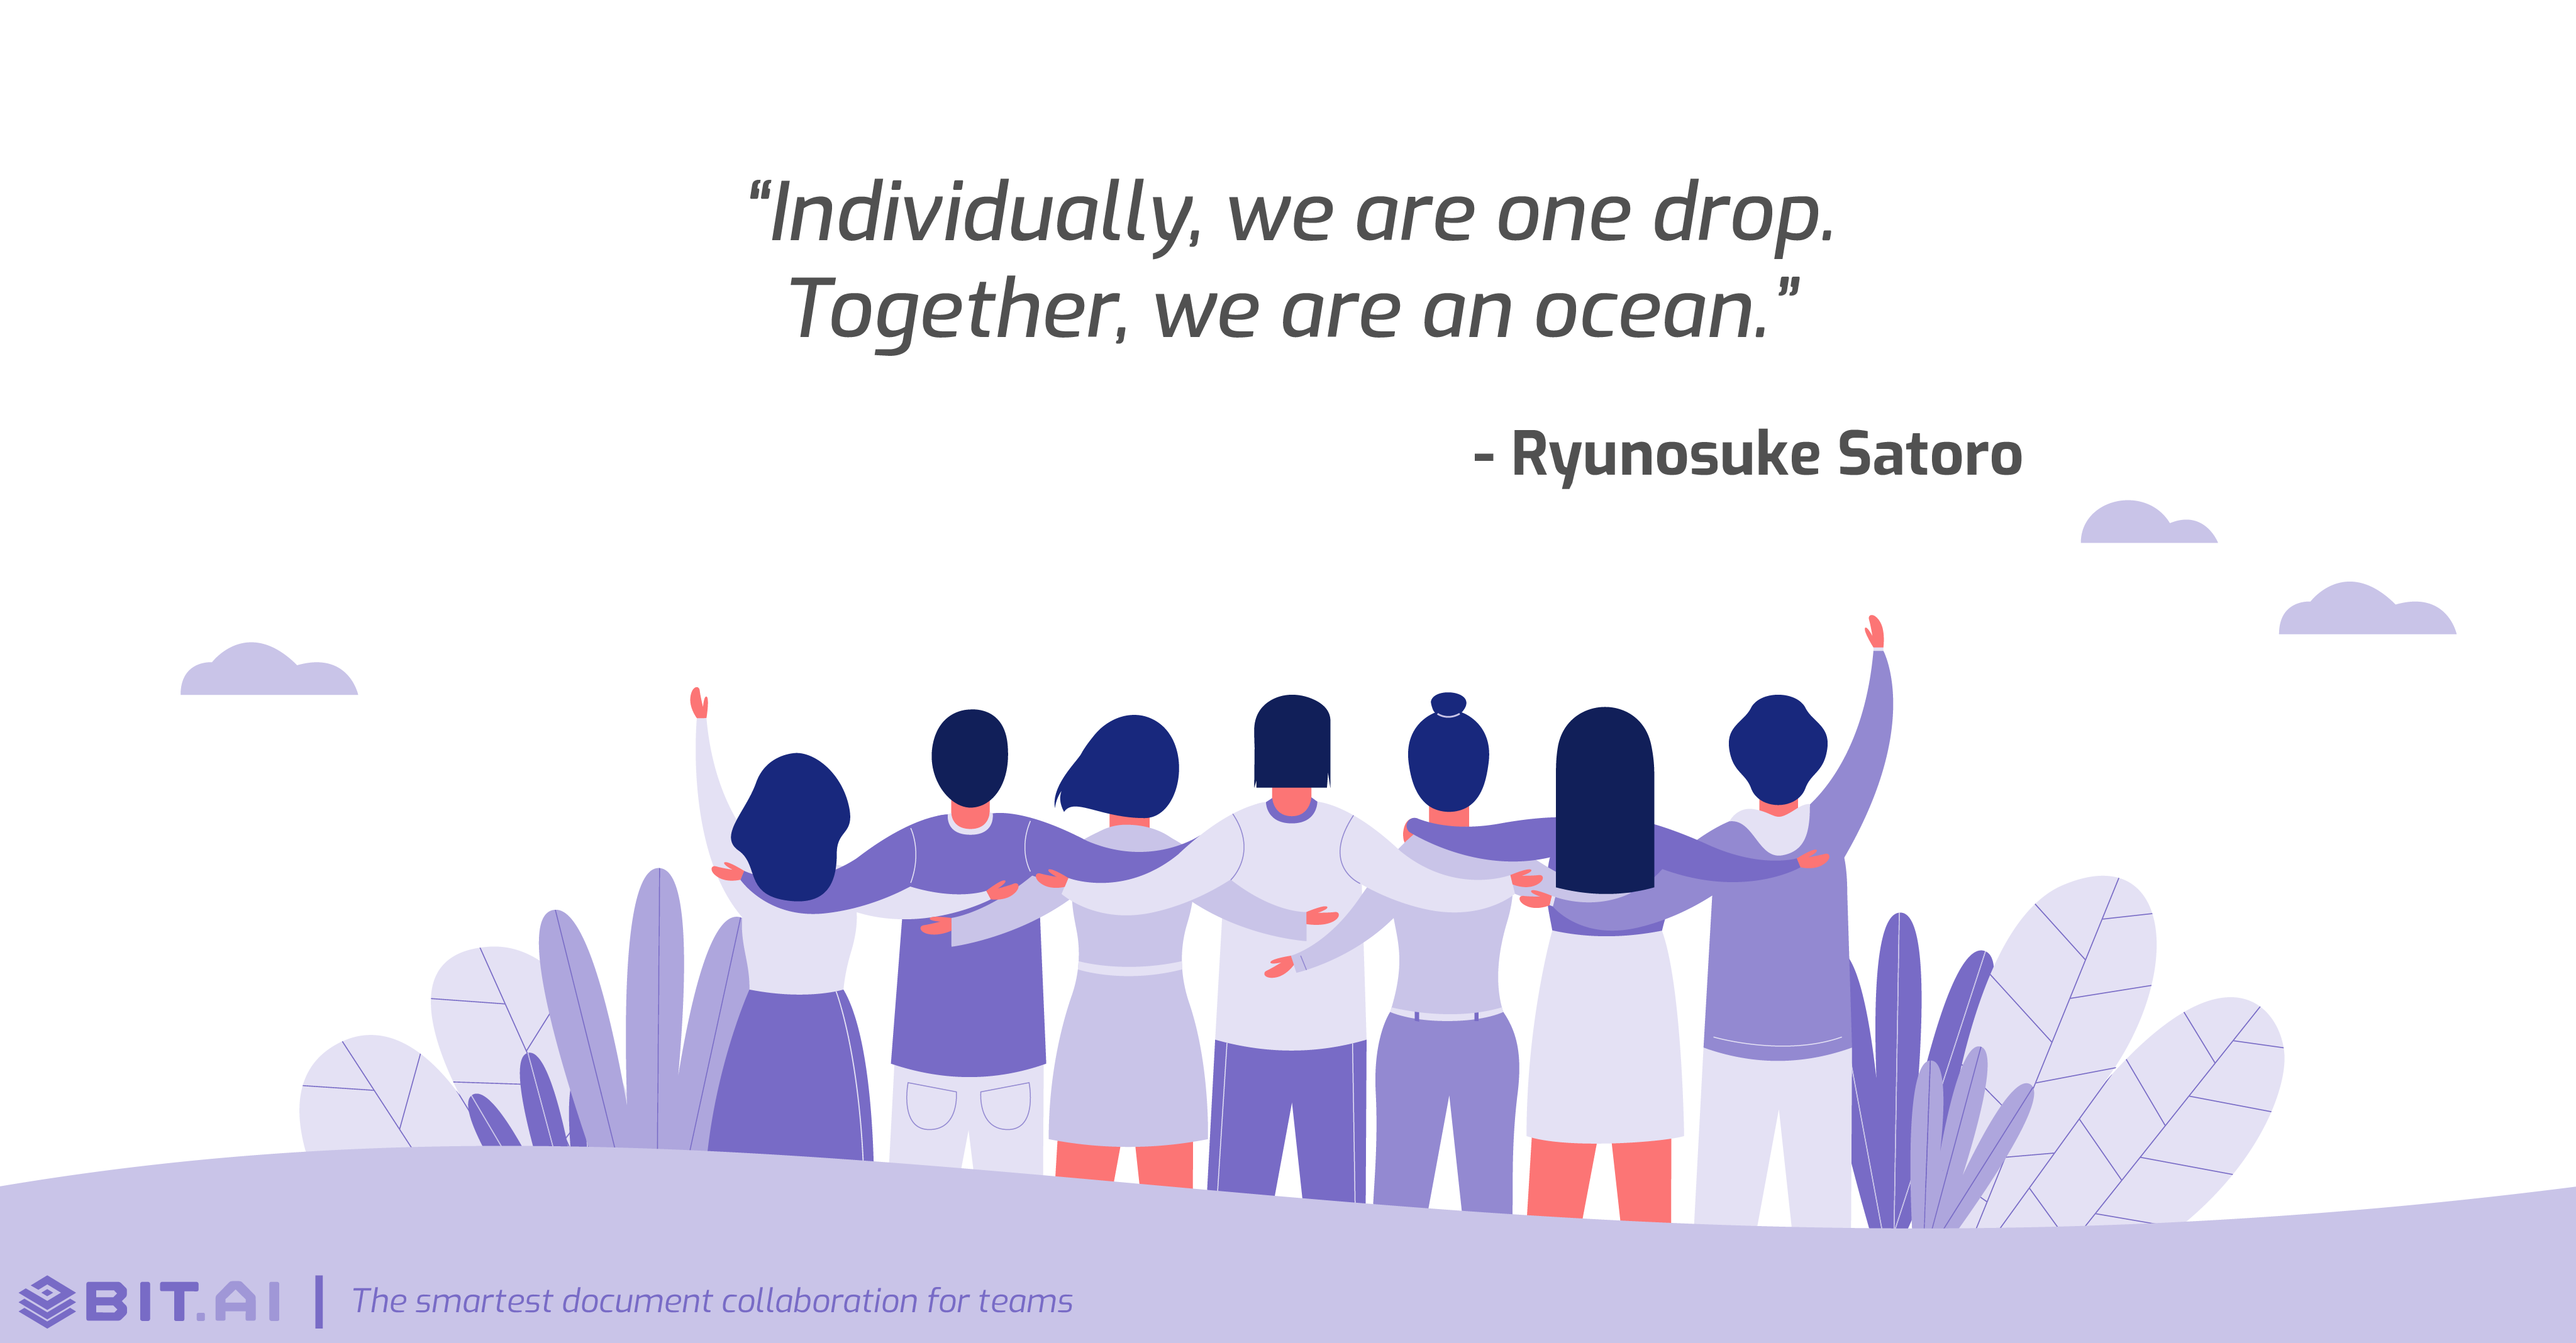 Teamwork collaboration quote: Individually, we are one drop. Together, we are an ocean. -Ryunosuke Satoro